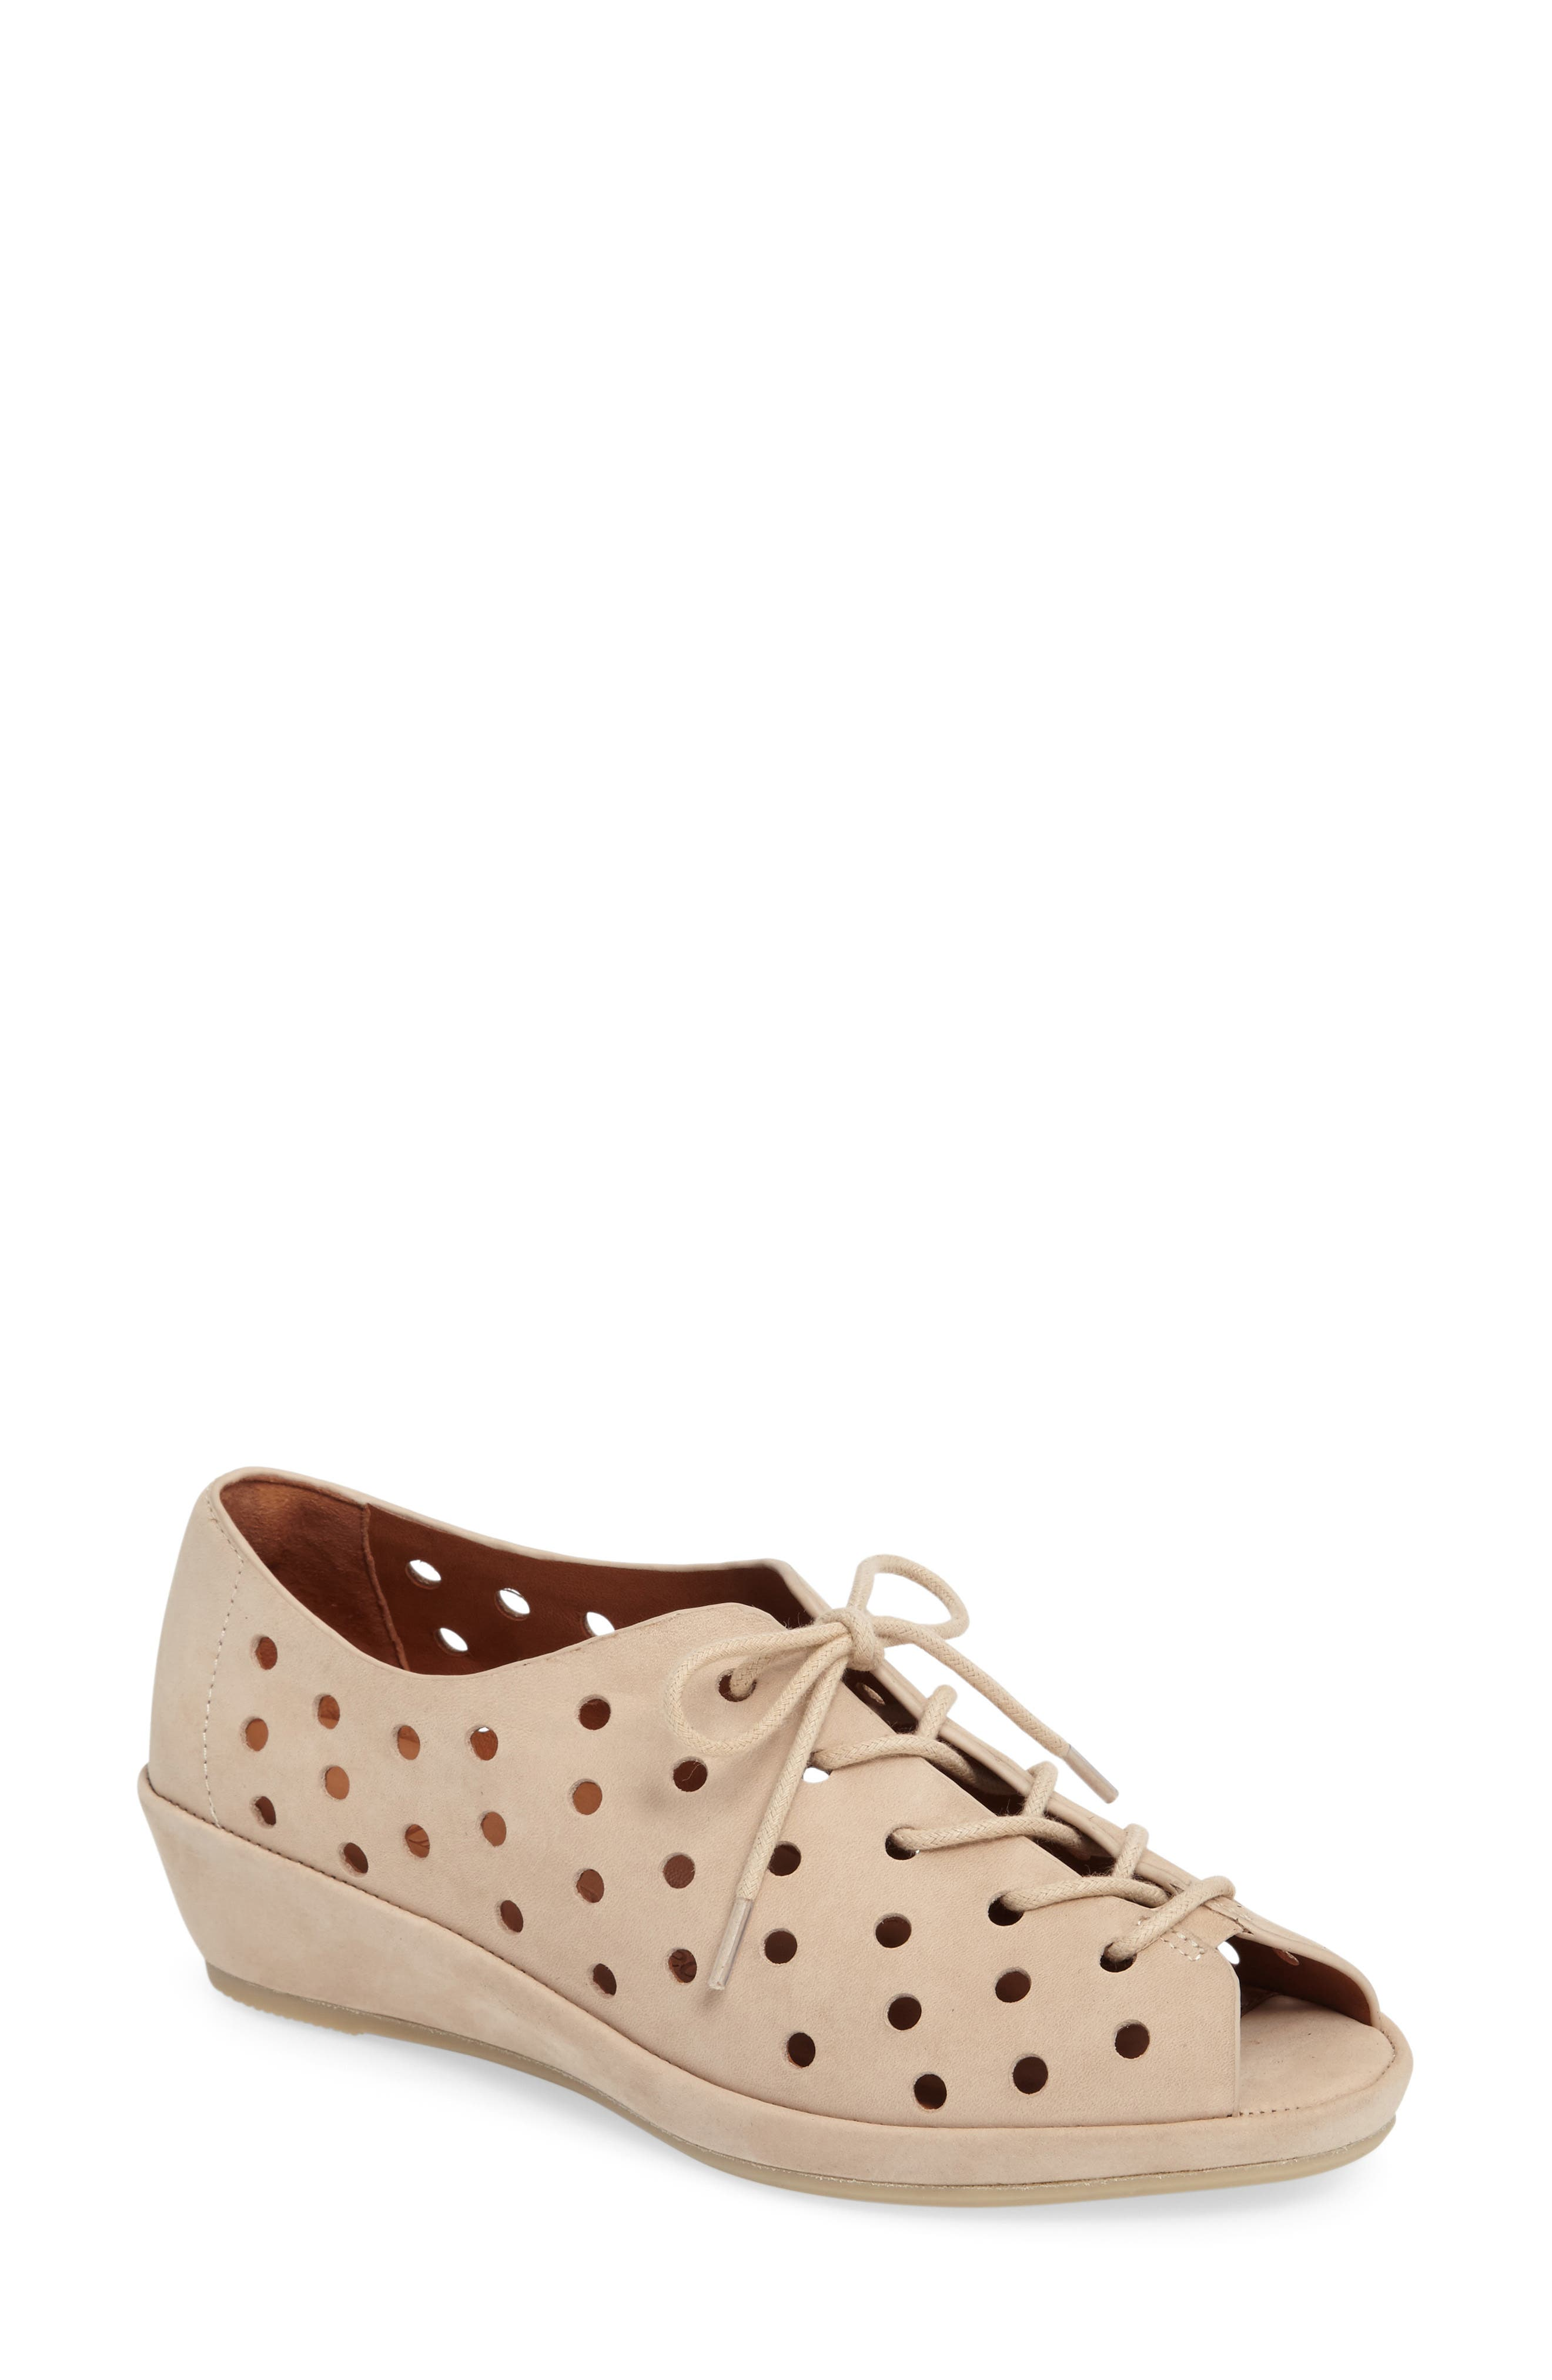 Alternate Image 1 Selected - L'Amour des Pieds Boccoo Perforated Lace-Up Oxford (Women)